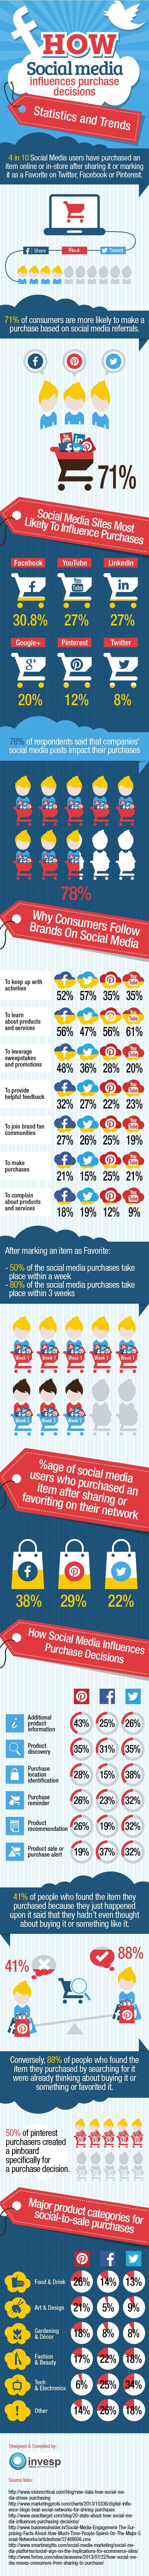 How Social Media Influences Purchase Decisions #ecommerce